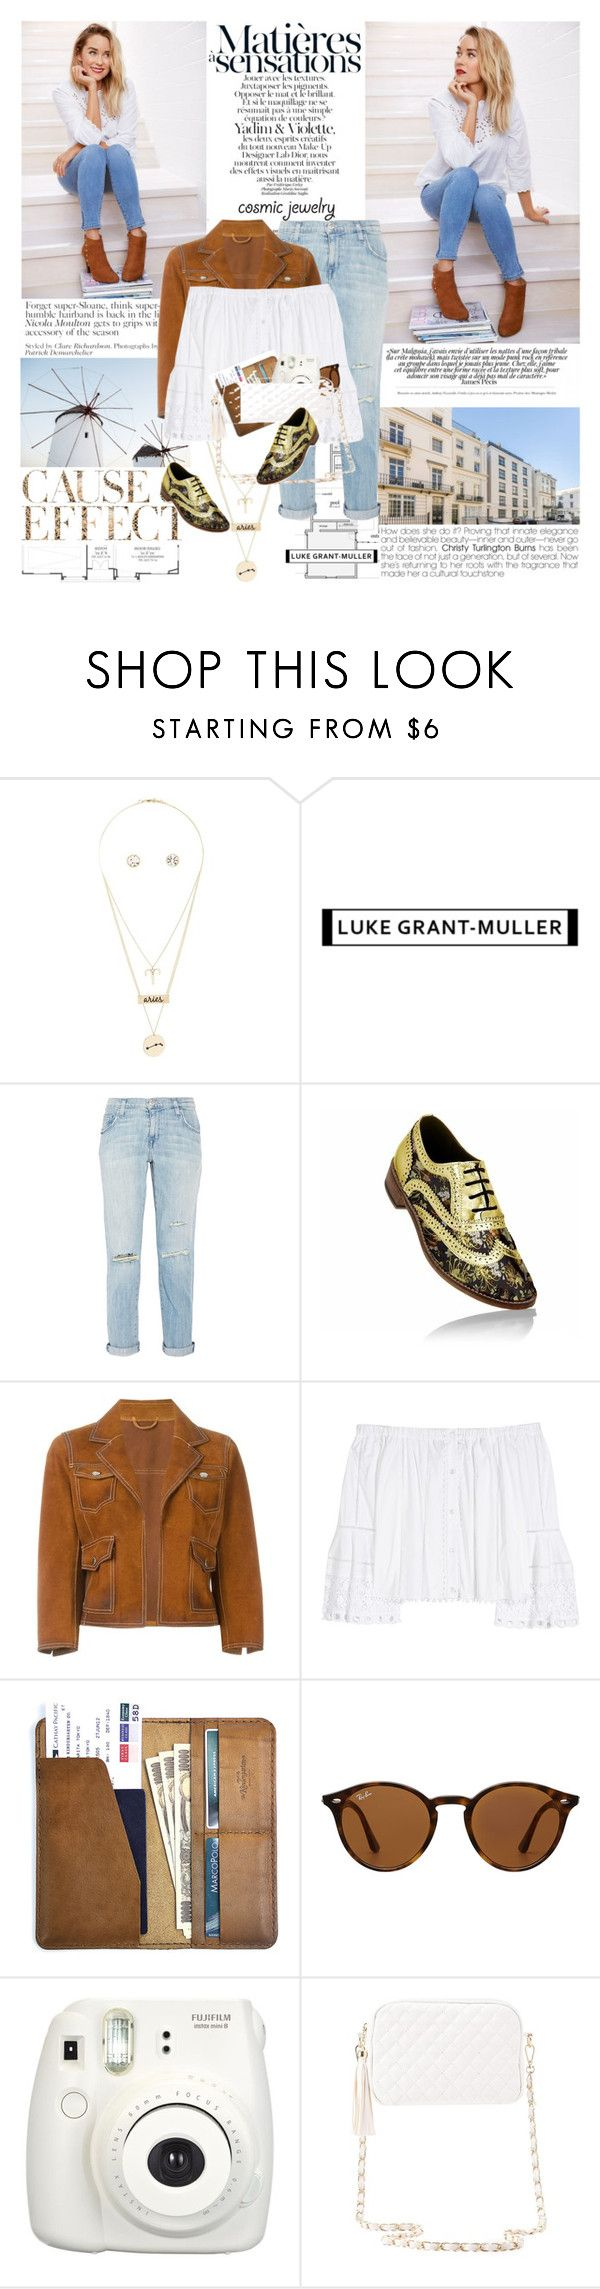 """""""What's Your Sign: Cosmic Jewelry   Aries {coupon code in description}"""" by mars ❤ liked on Polyvore featuring Charlotte Russe, Envi:, Current/Elliott, Dsquared2, Carolina Herrera, CO, Ray-Ban and Fujifilm"""